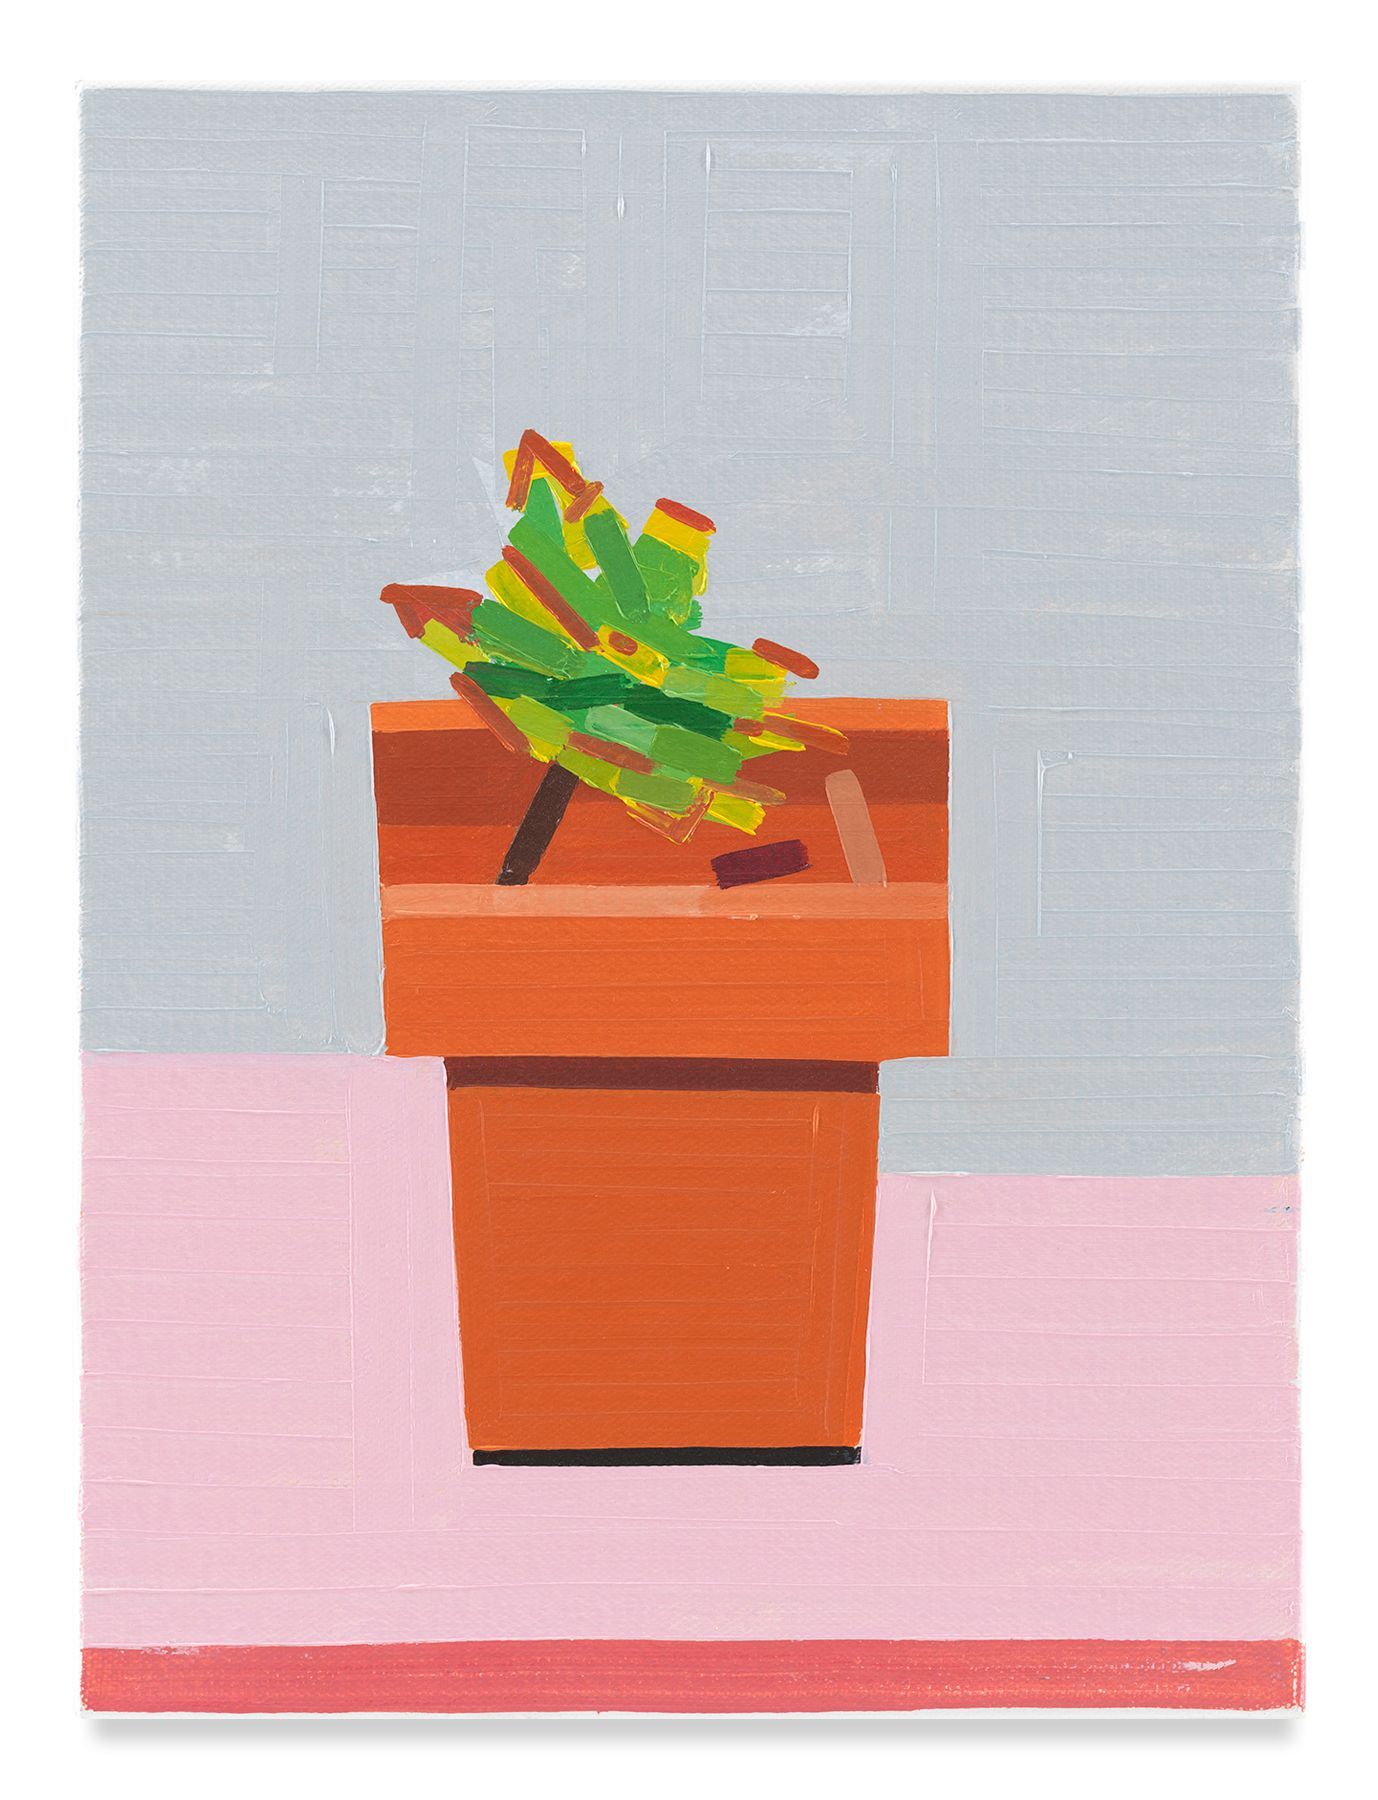 European Plant, 2019,Oil on canvas,16 x 11 7/8 inches,40.6 x 30.2 cm,MMG#32140